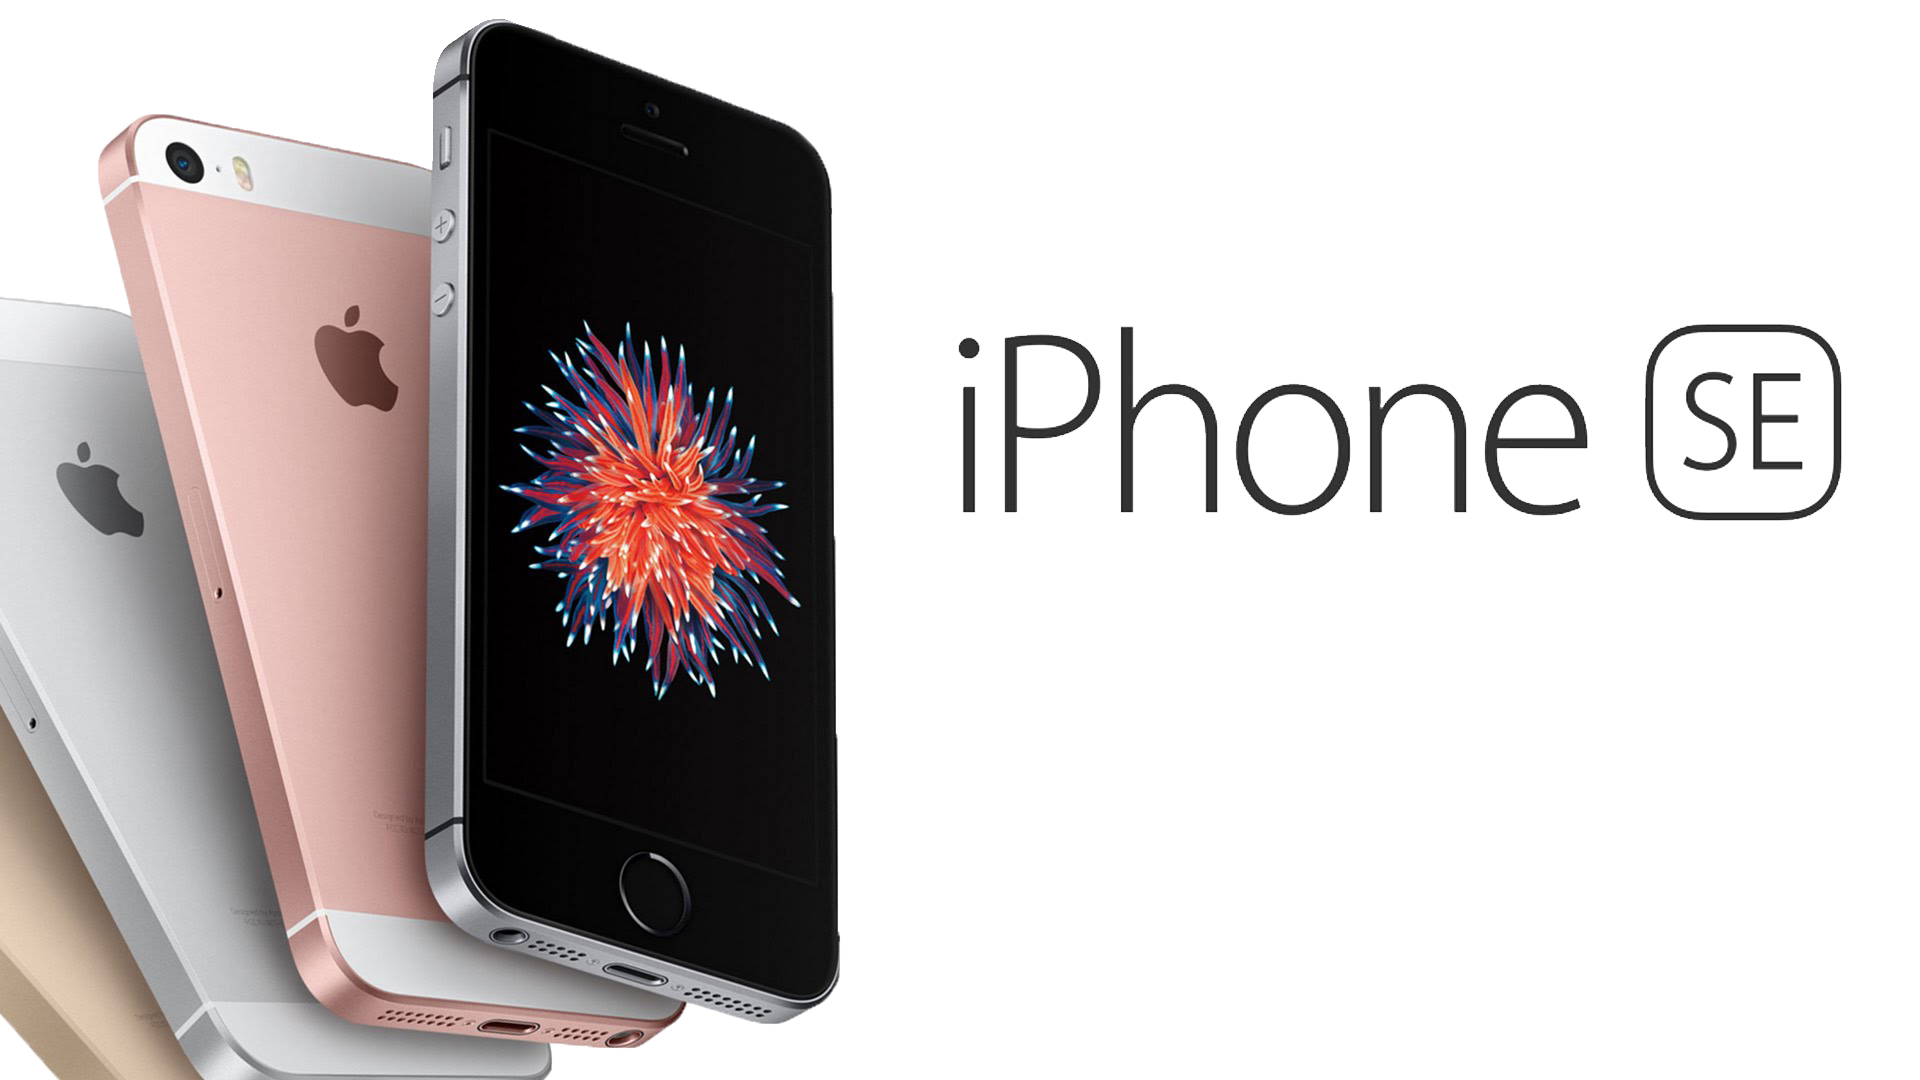 5-in-the-Best-Smartphones-of-2016-List-iPhone-SE